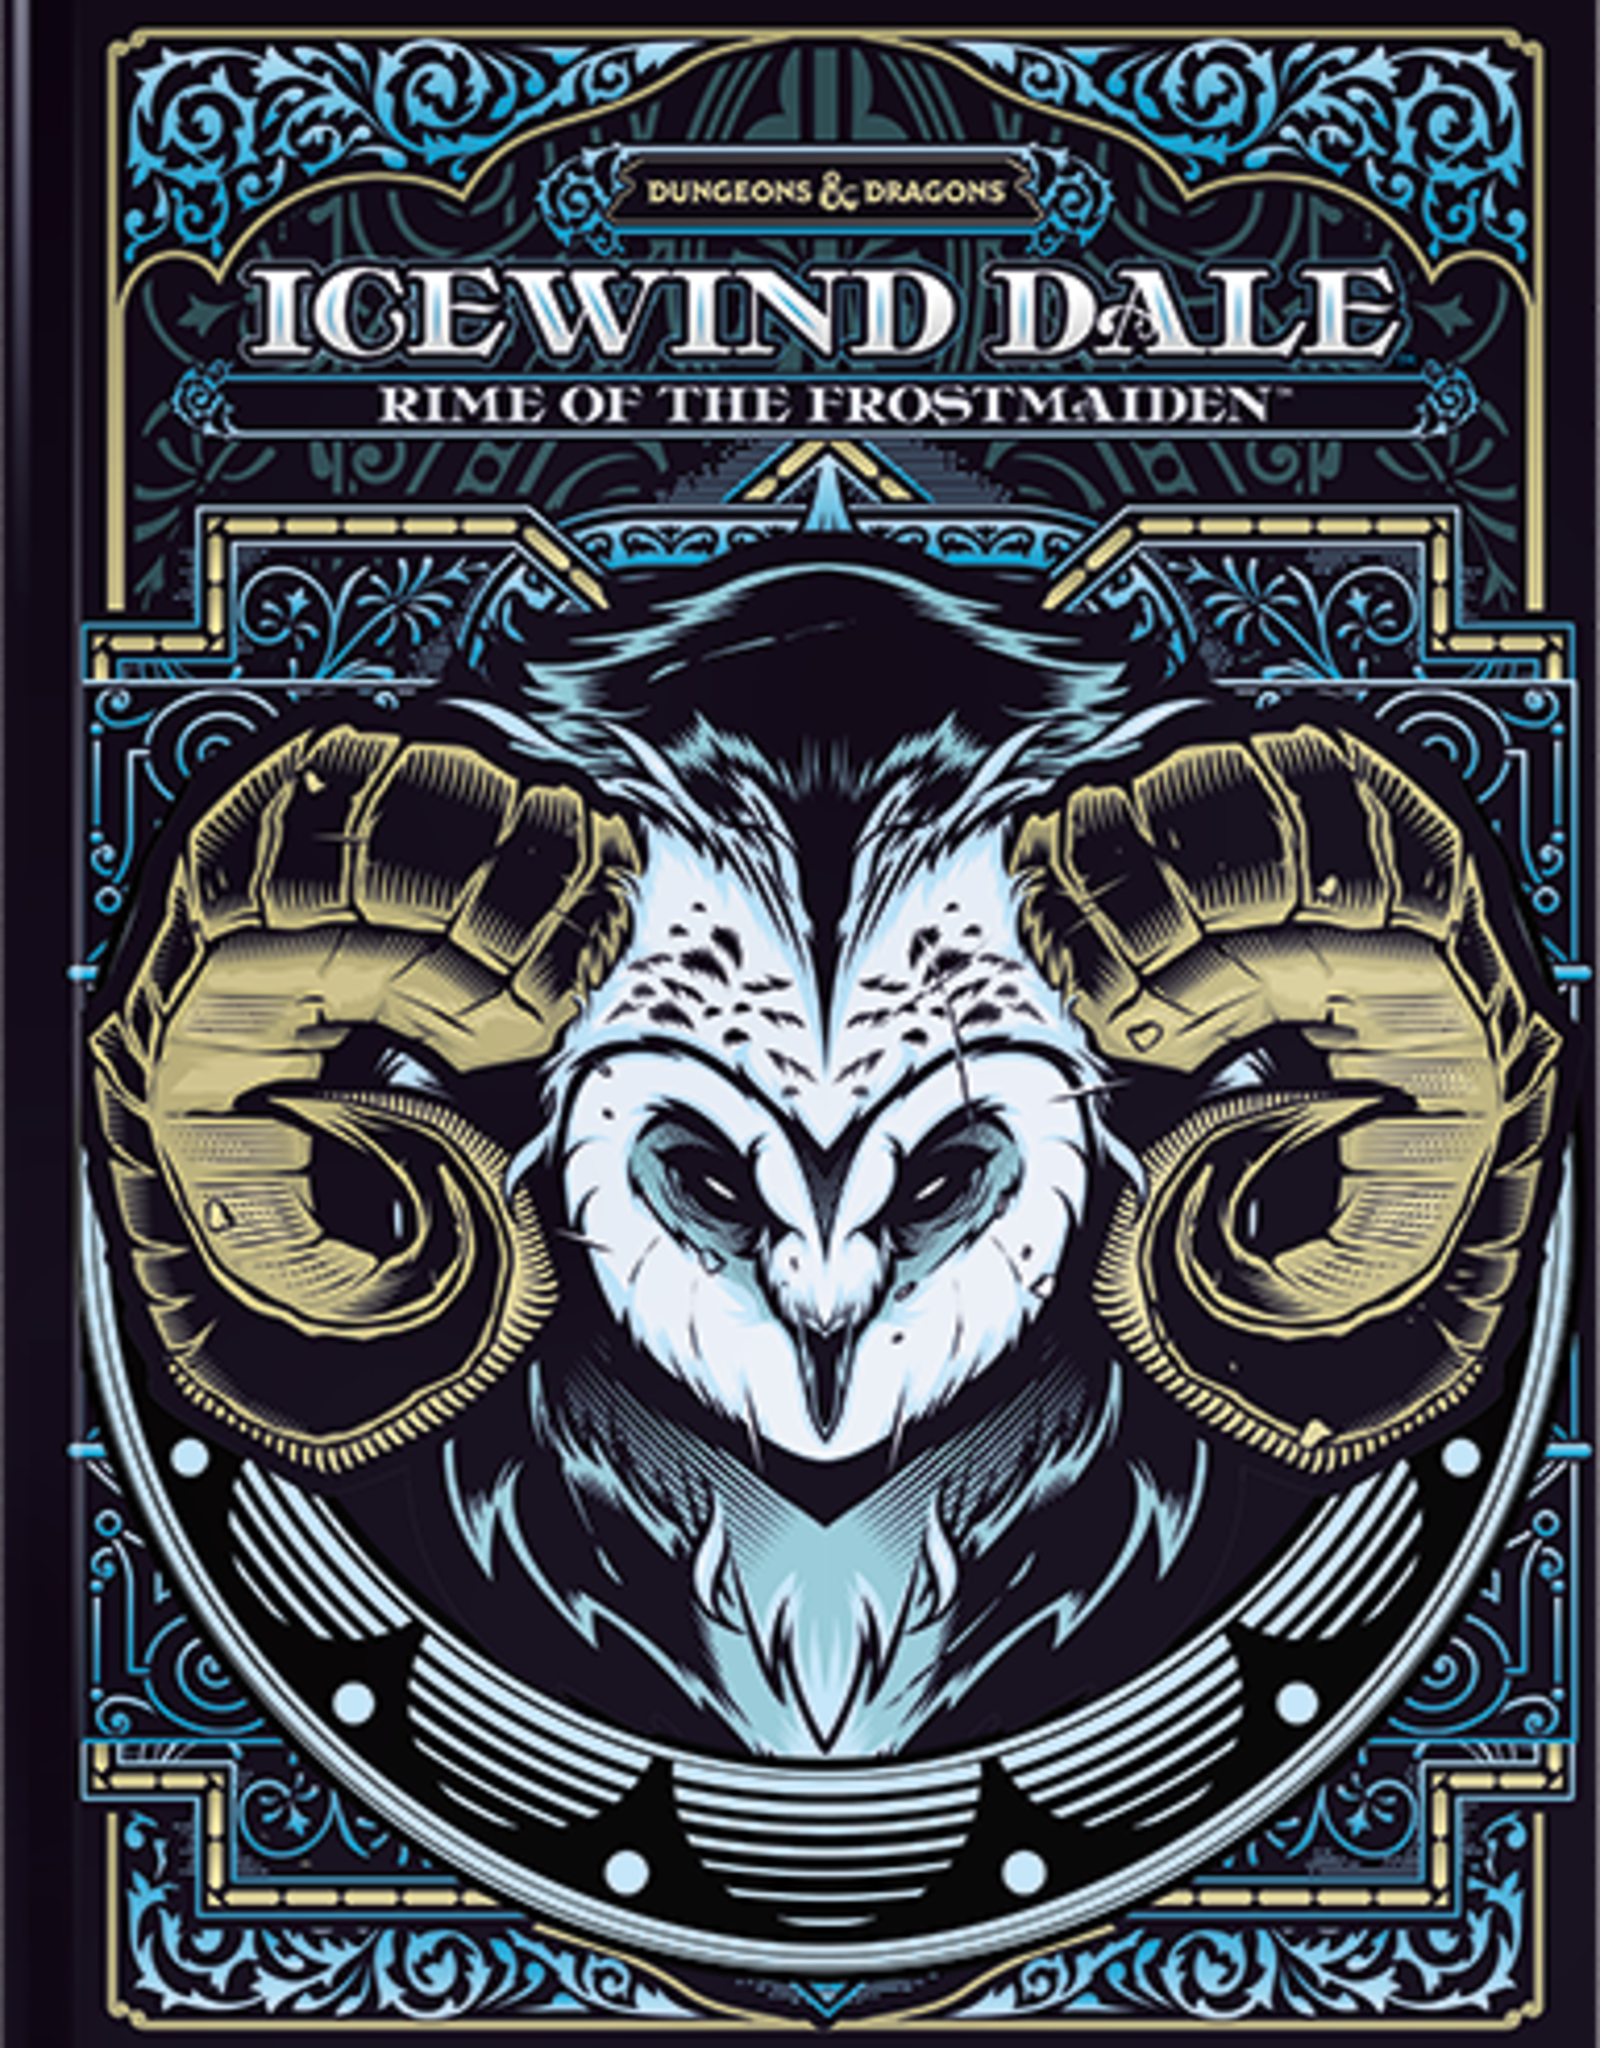 Ice Wind Dale - Rime of the Frost Maiden Alternate Cover